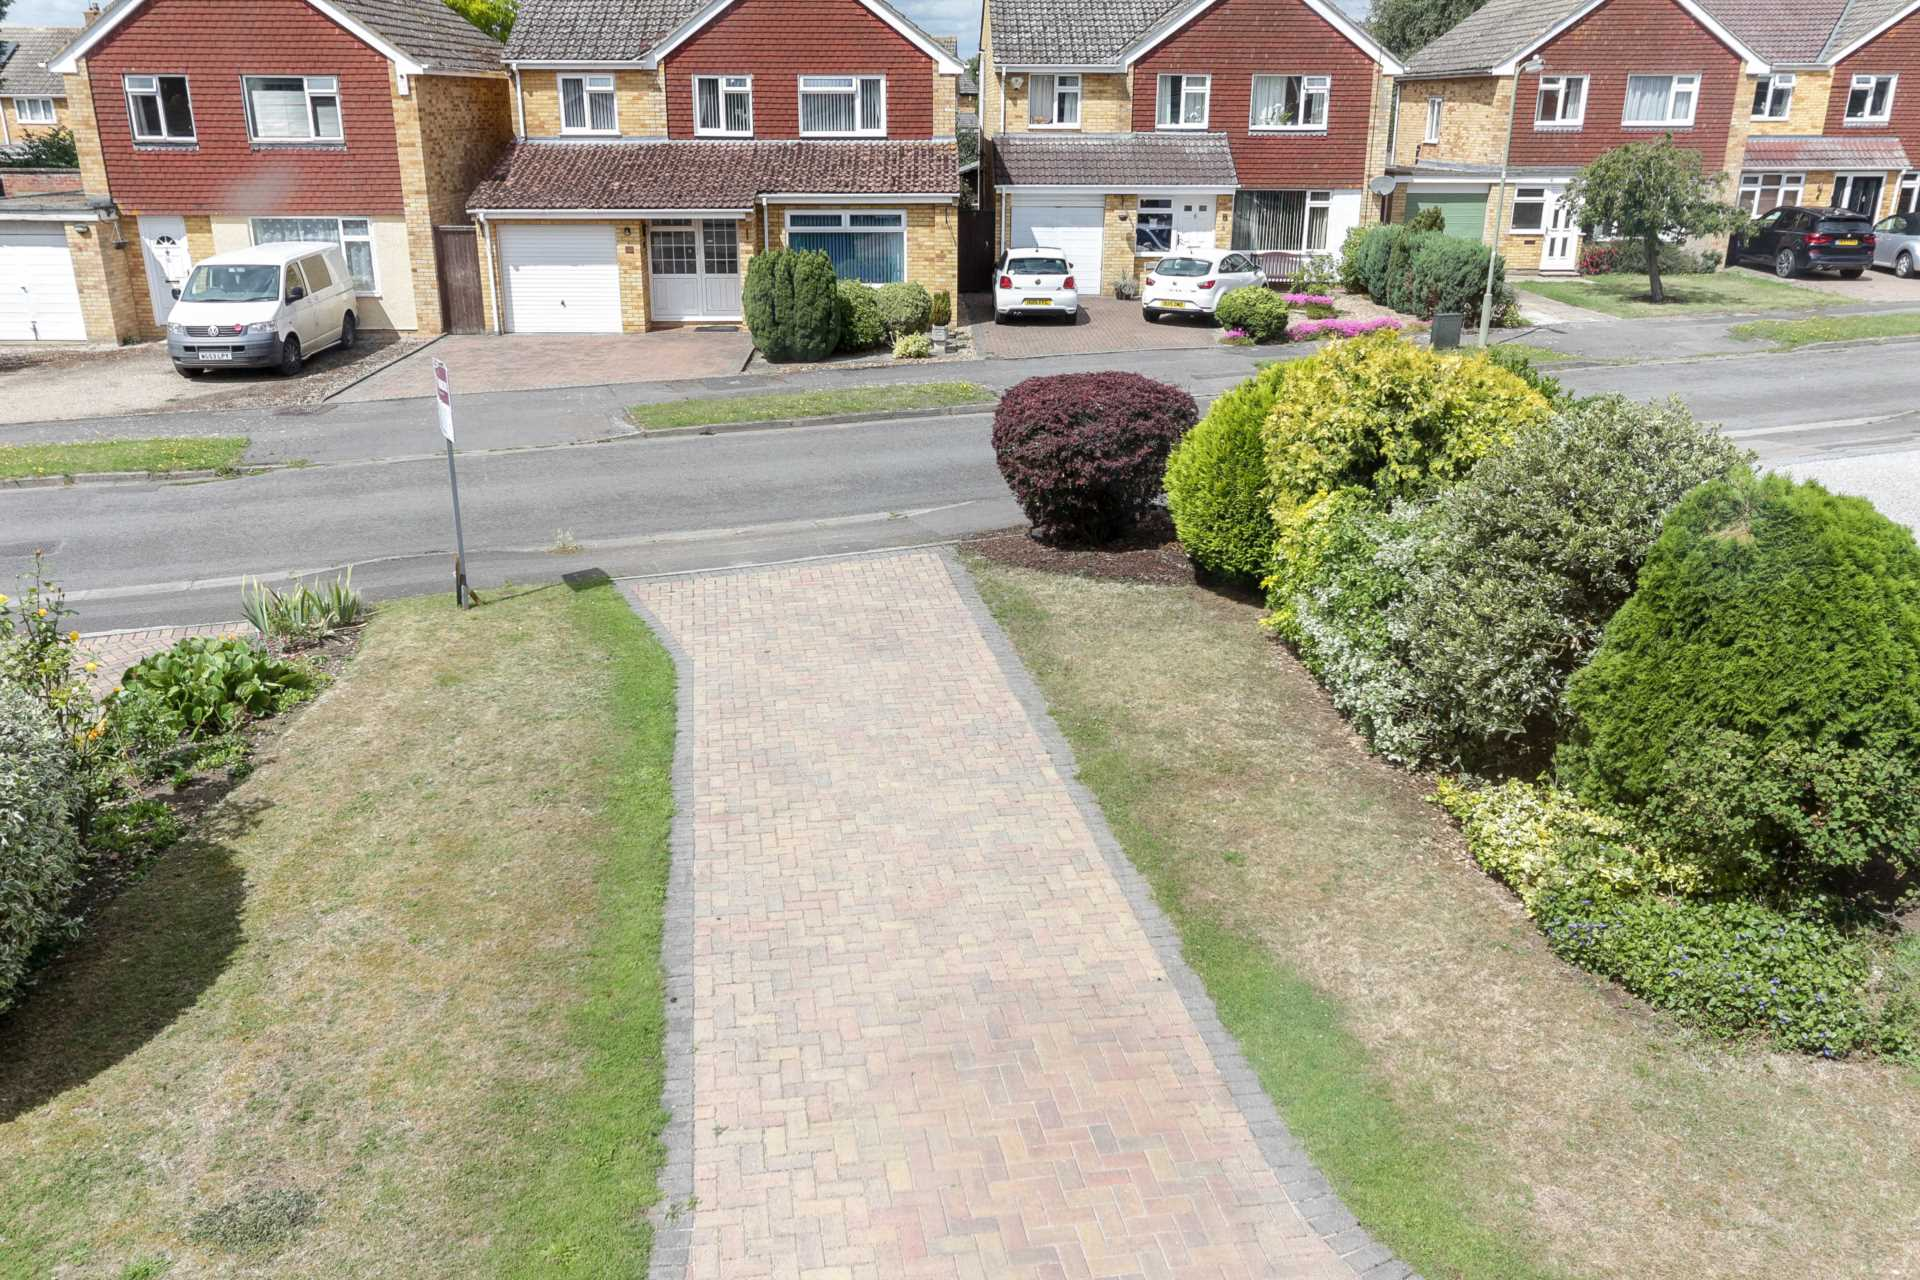 Greenfield Crescent, Wallingford, Image 13